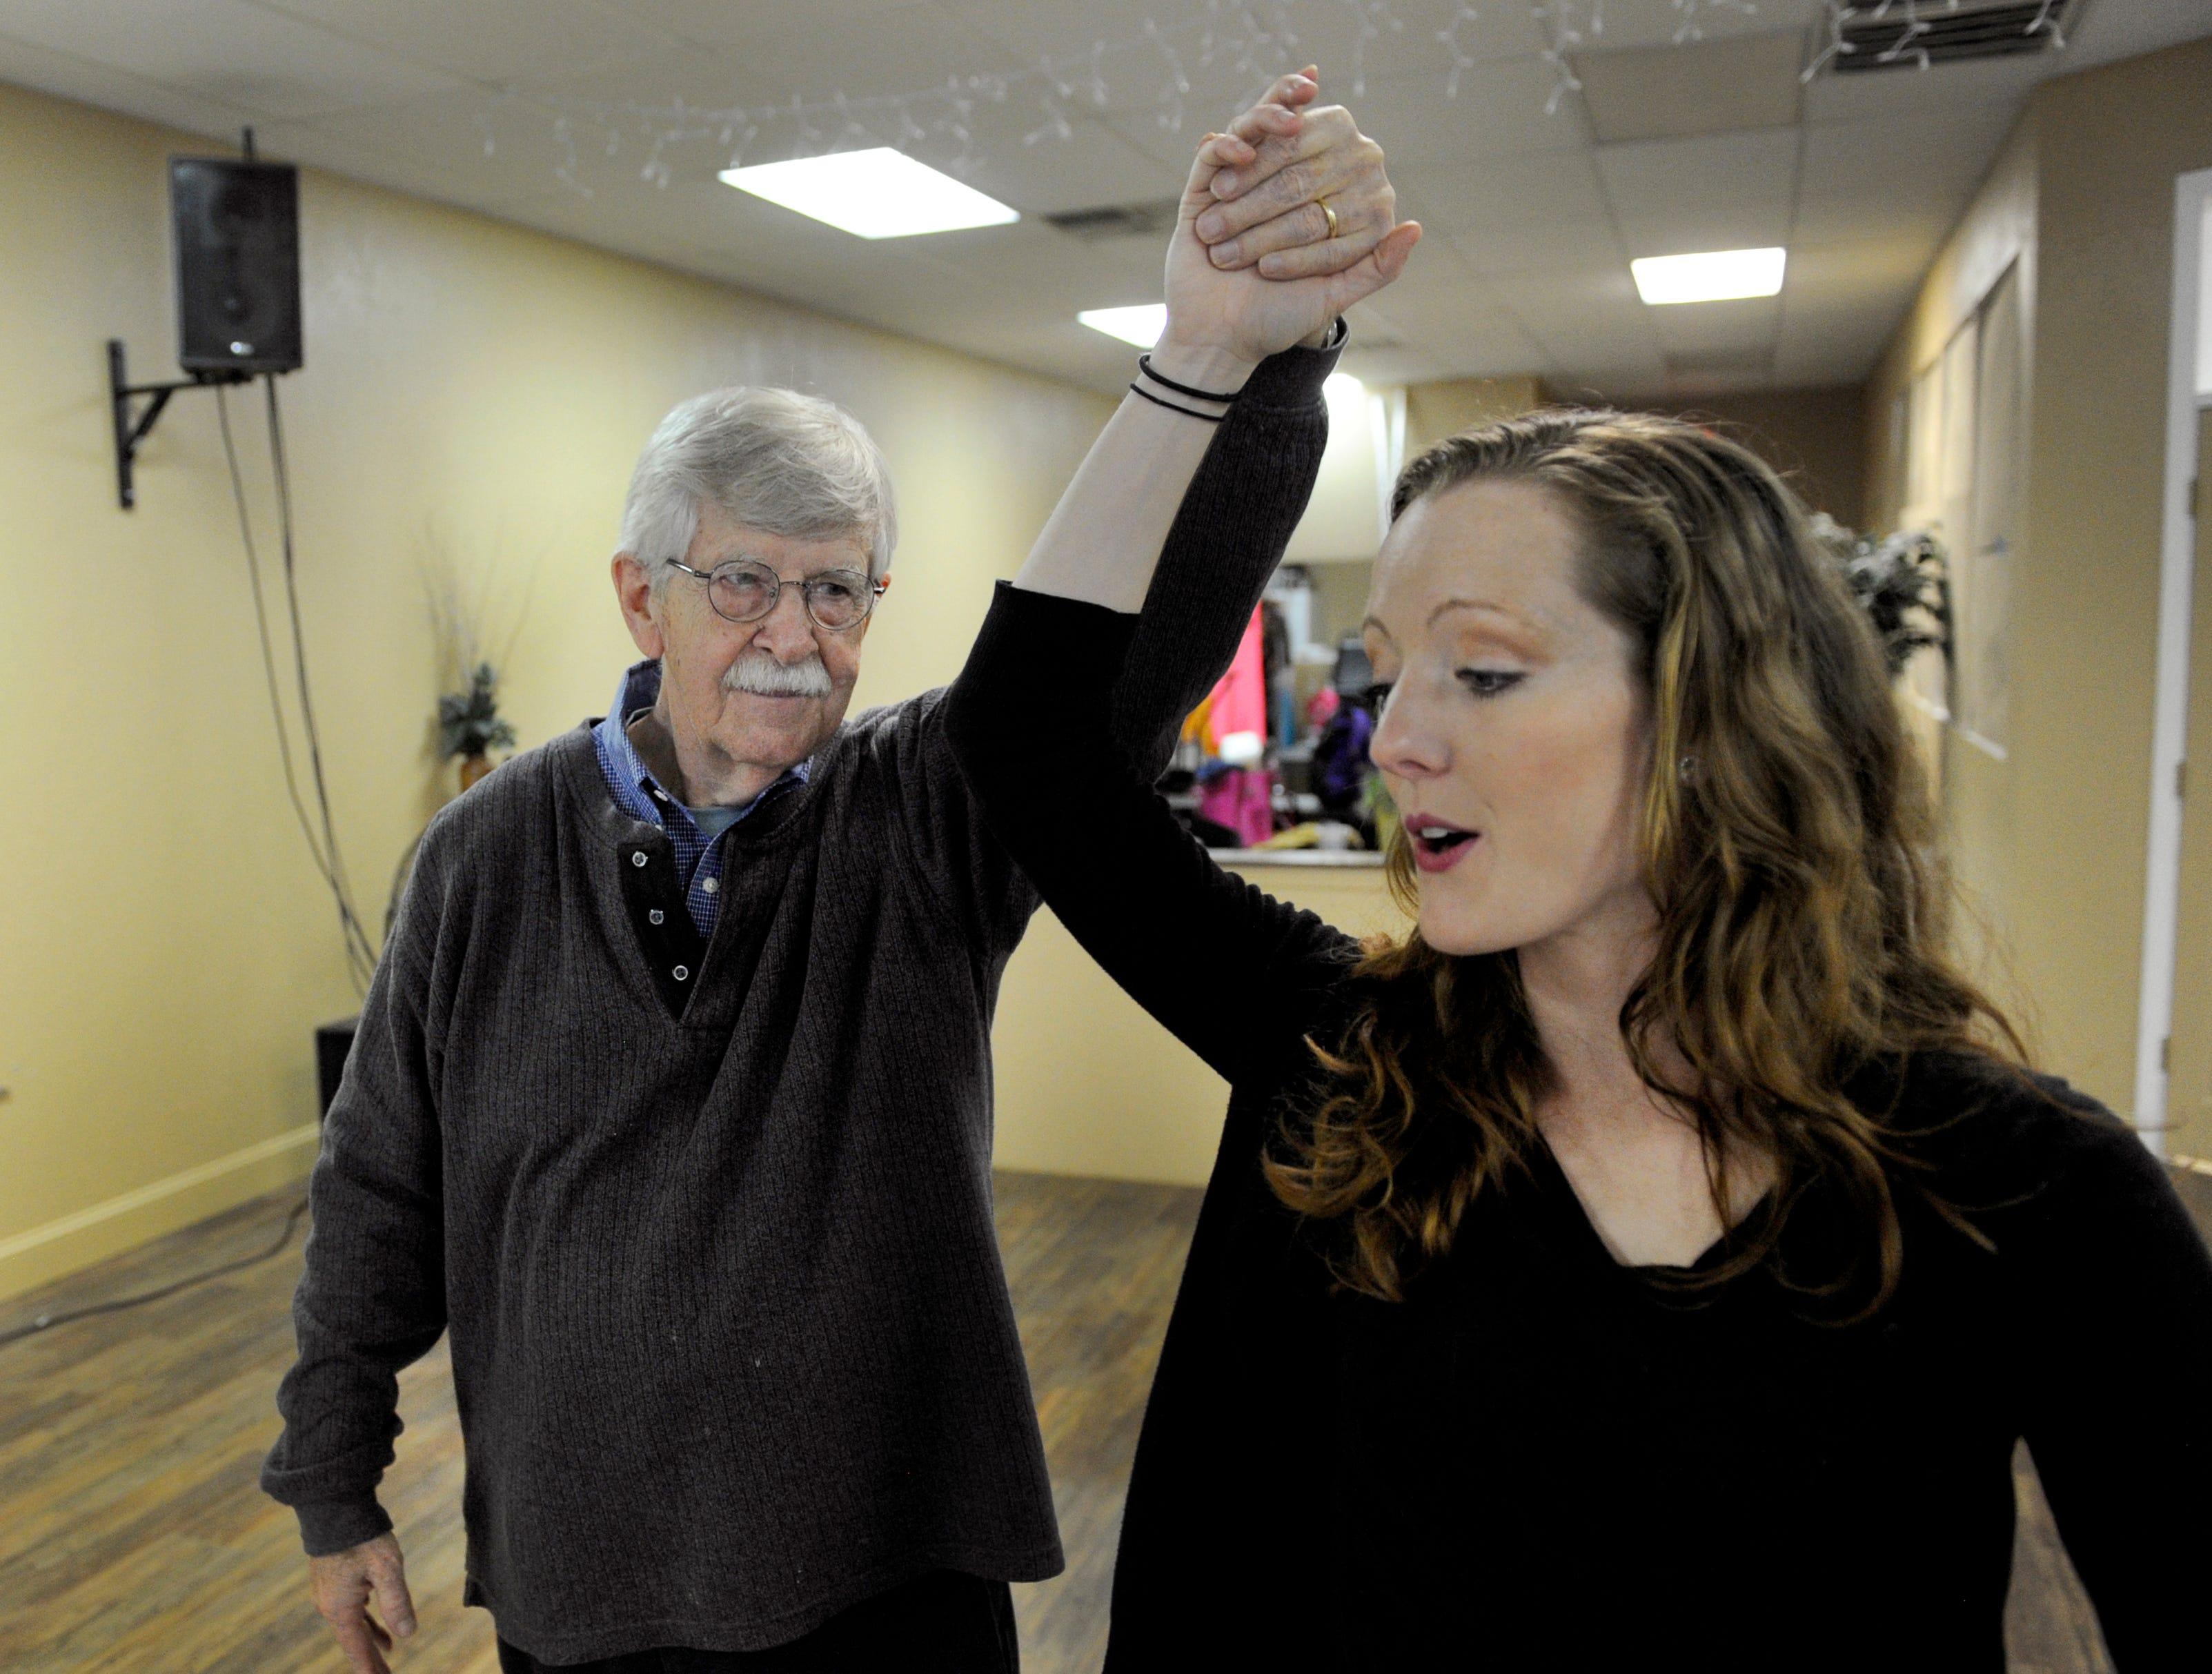 Charlie Daniel spins his dance partner Stephanie Braeuner (CQ) during practice Tuesday, Mar. 12, 2013 at Academy Ballroom. Charlie Daniel is representing the News Sentinel in the annual Children's Hospital fundraiser dancing w/ the knoxville stars.